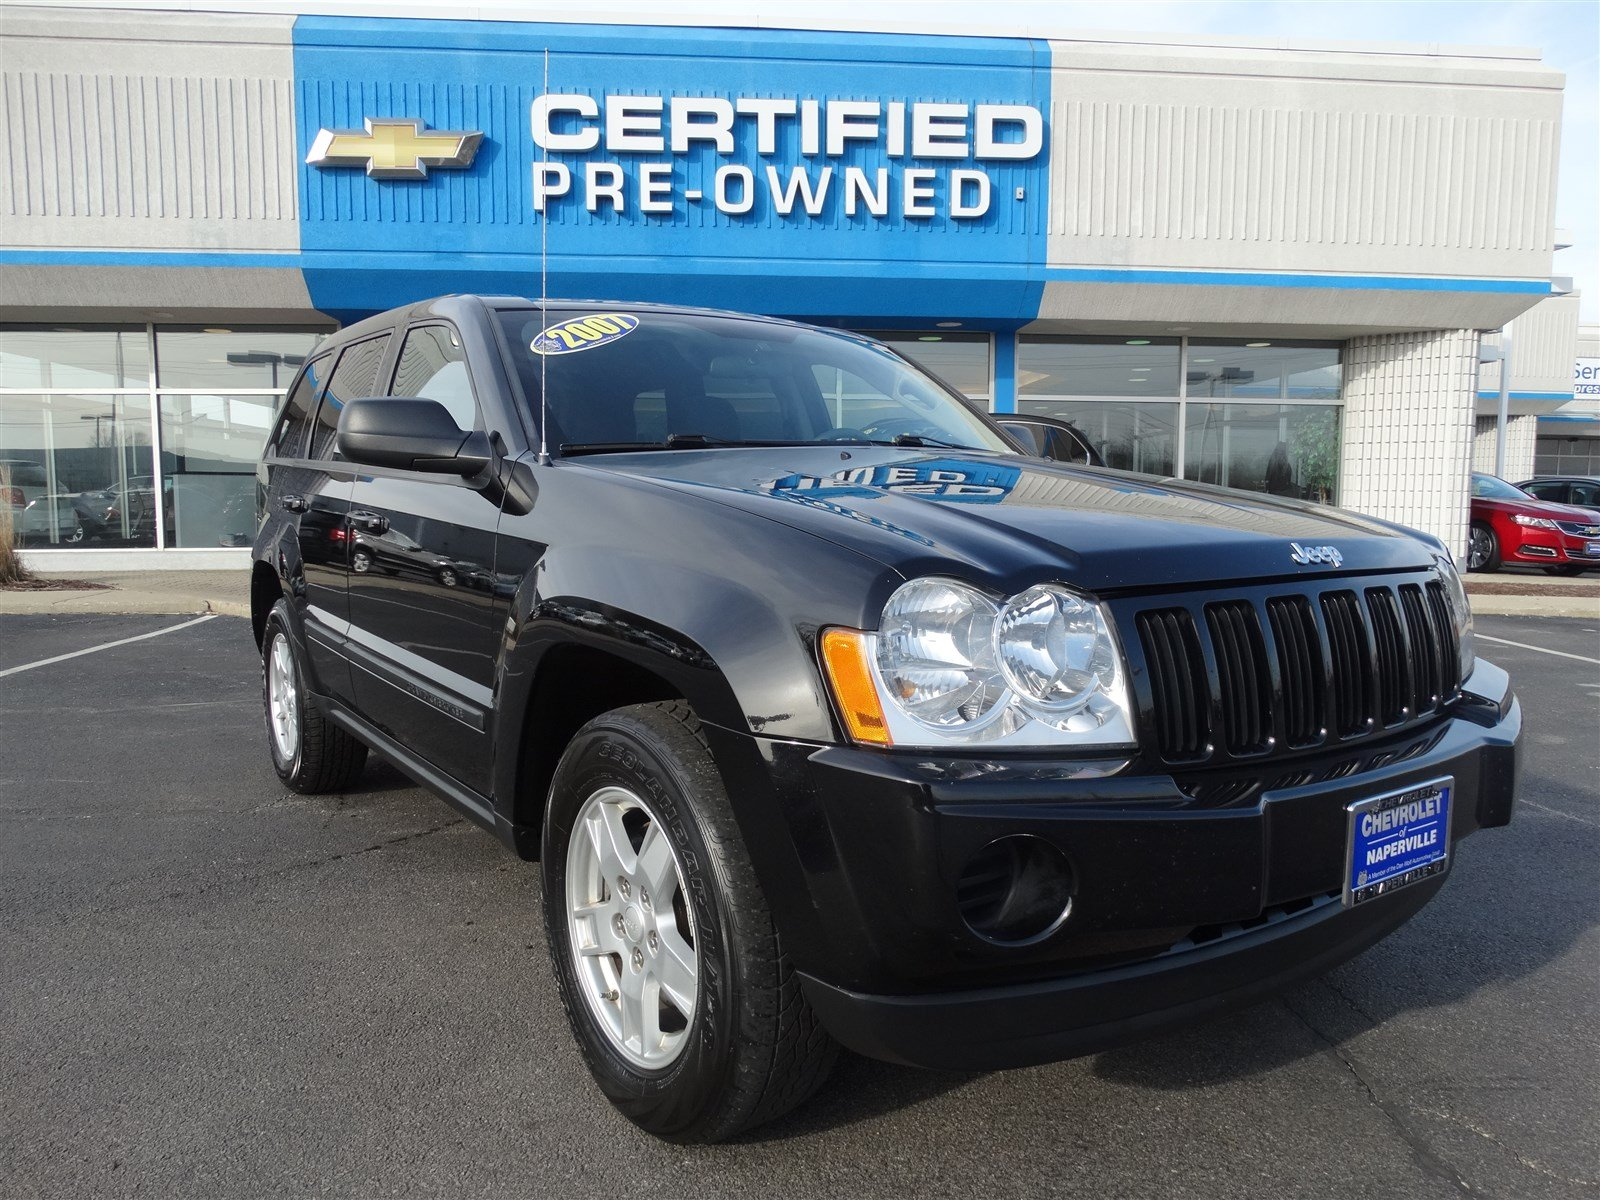 Pre Owned 2007 Jeep Grand Cherokee Laredo Sport Utility in